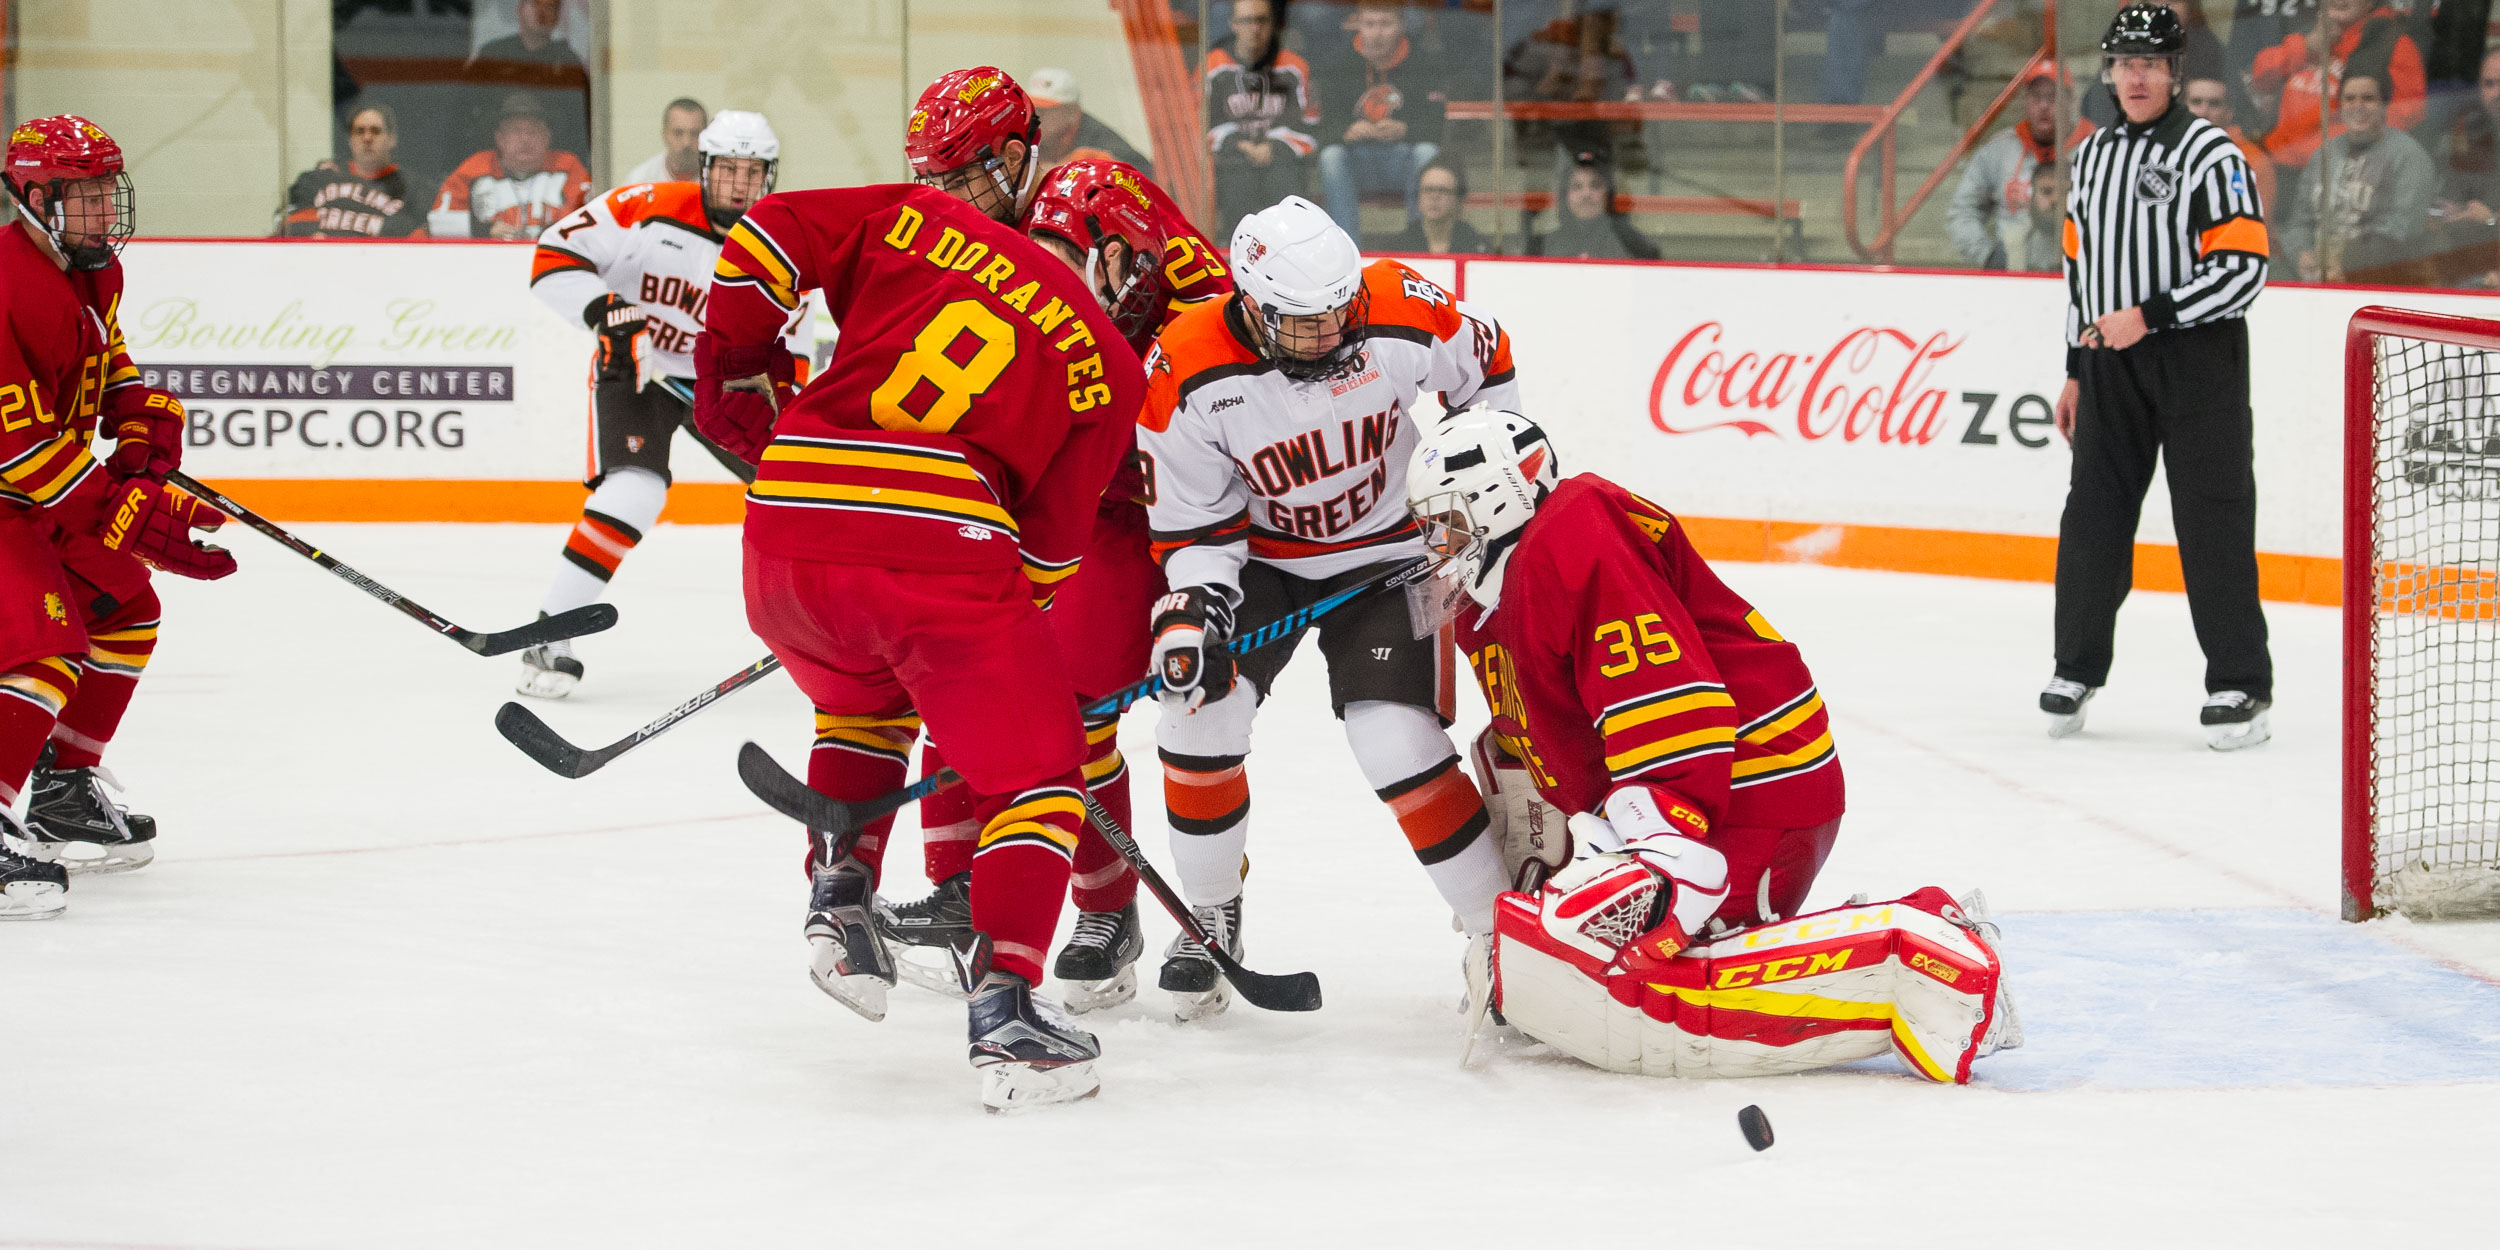 FSU wins special teams battle to carry 3-1 win